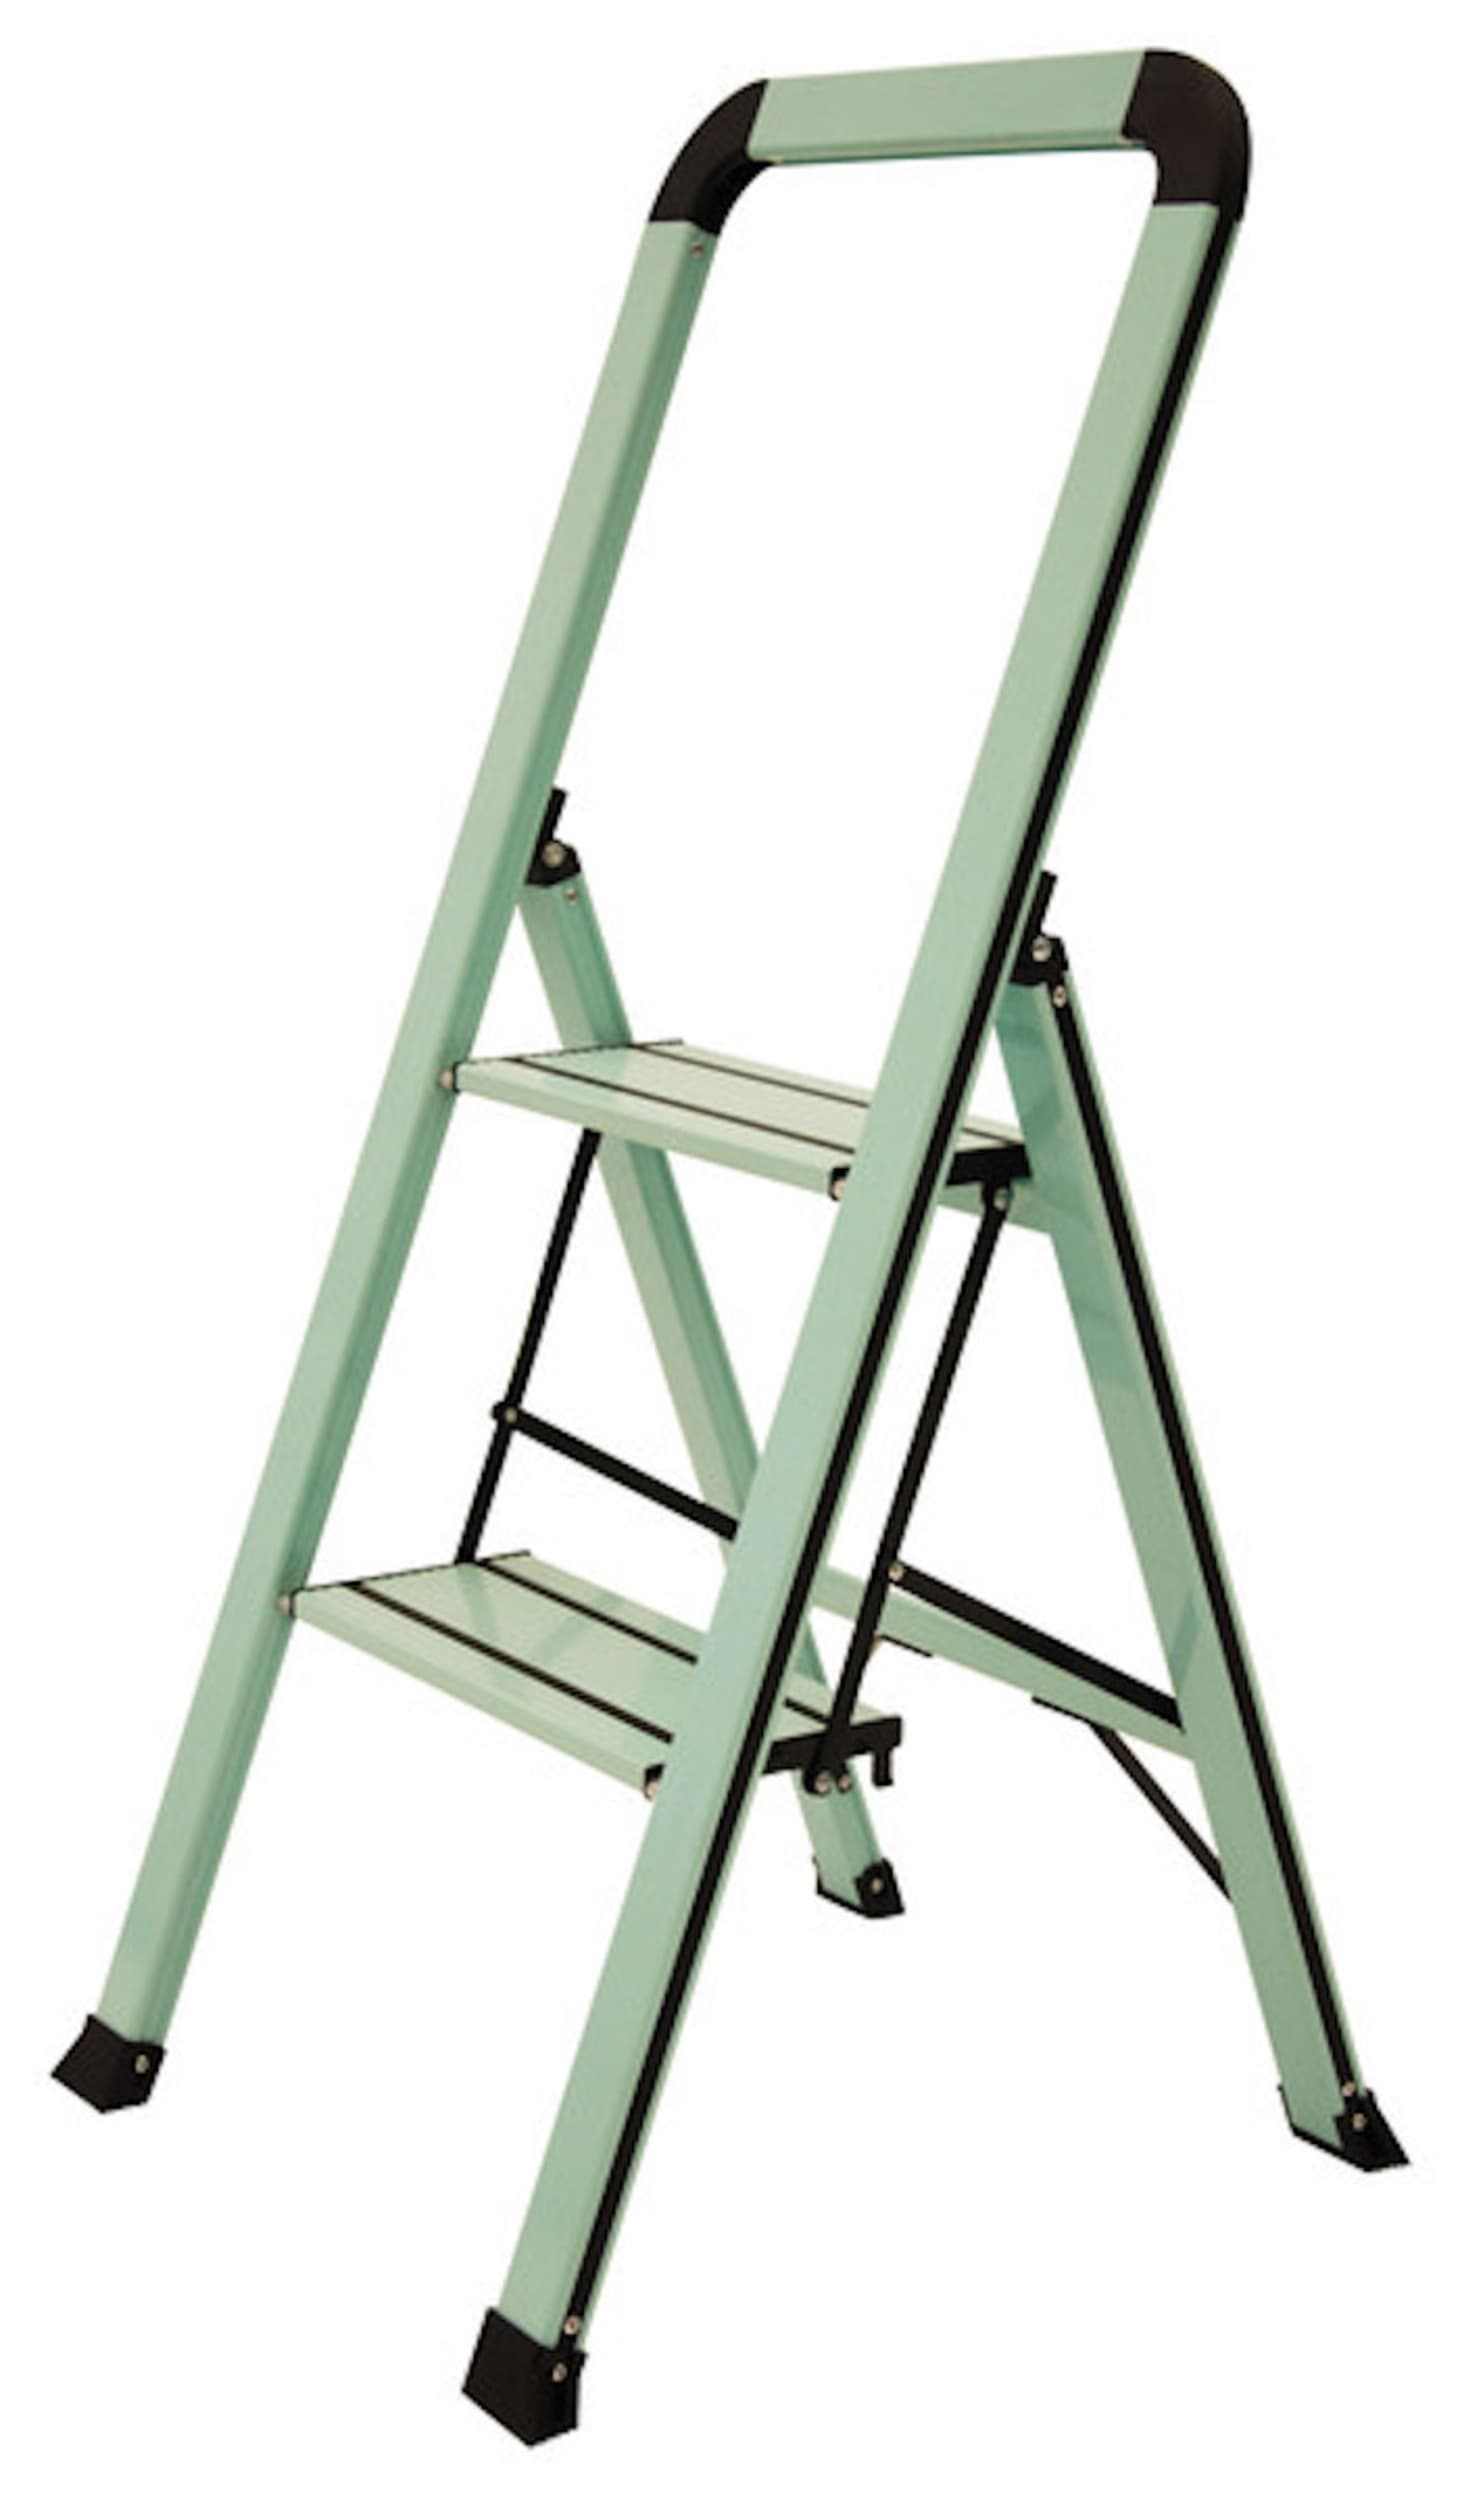 Peachy Best Step Stools And Ladders To Help You Reach New Heights Gmtry Best Dining Table And Chair Ideas Images Gmtryco